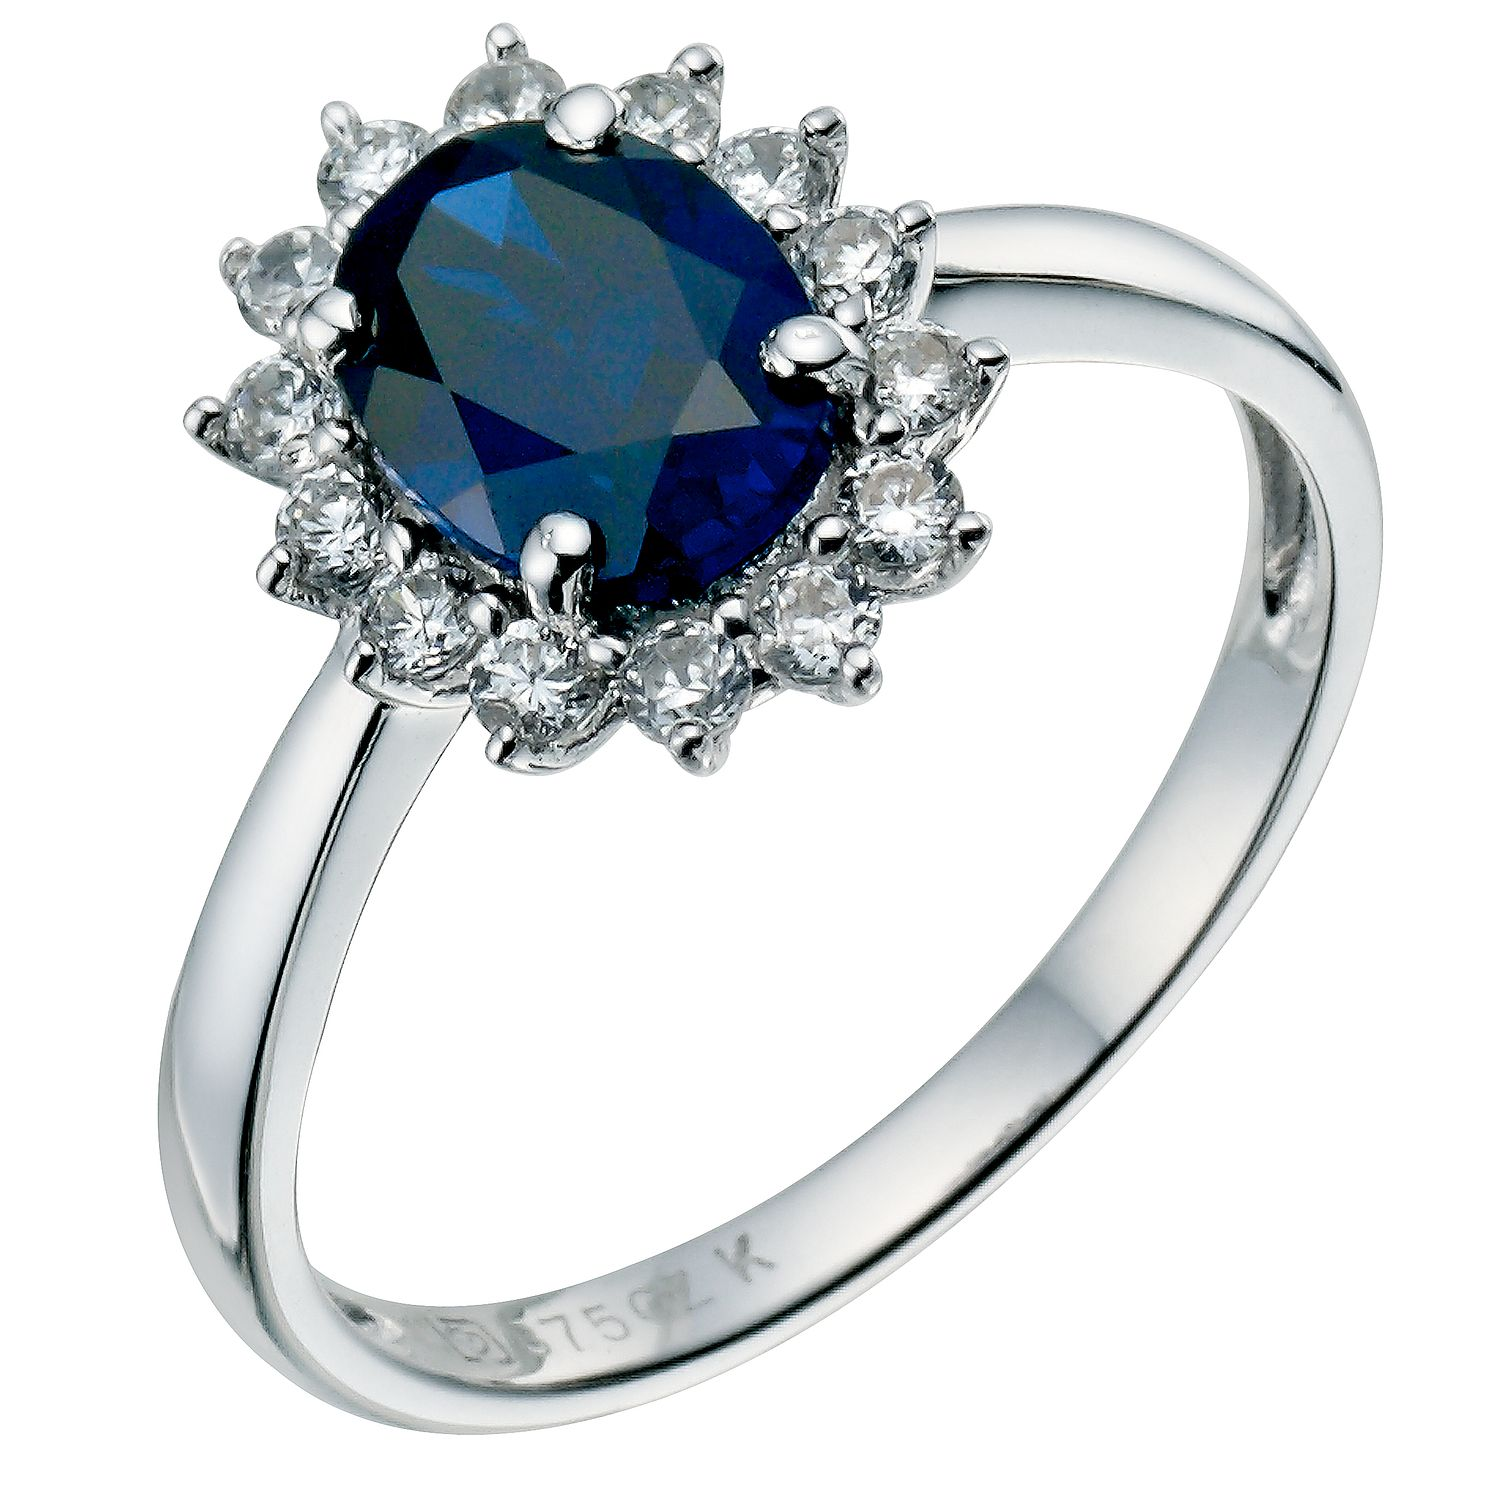 prod sapphire silver rings wid saffire size and ring blue qlt sterling white hei p